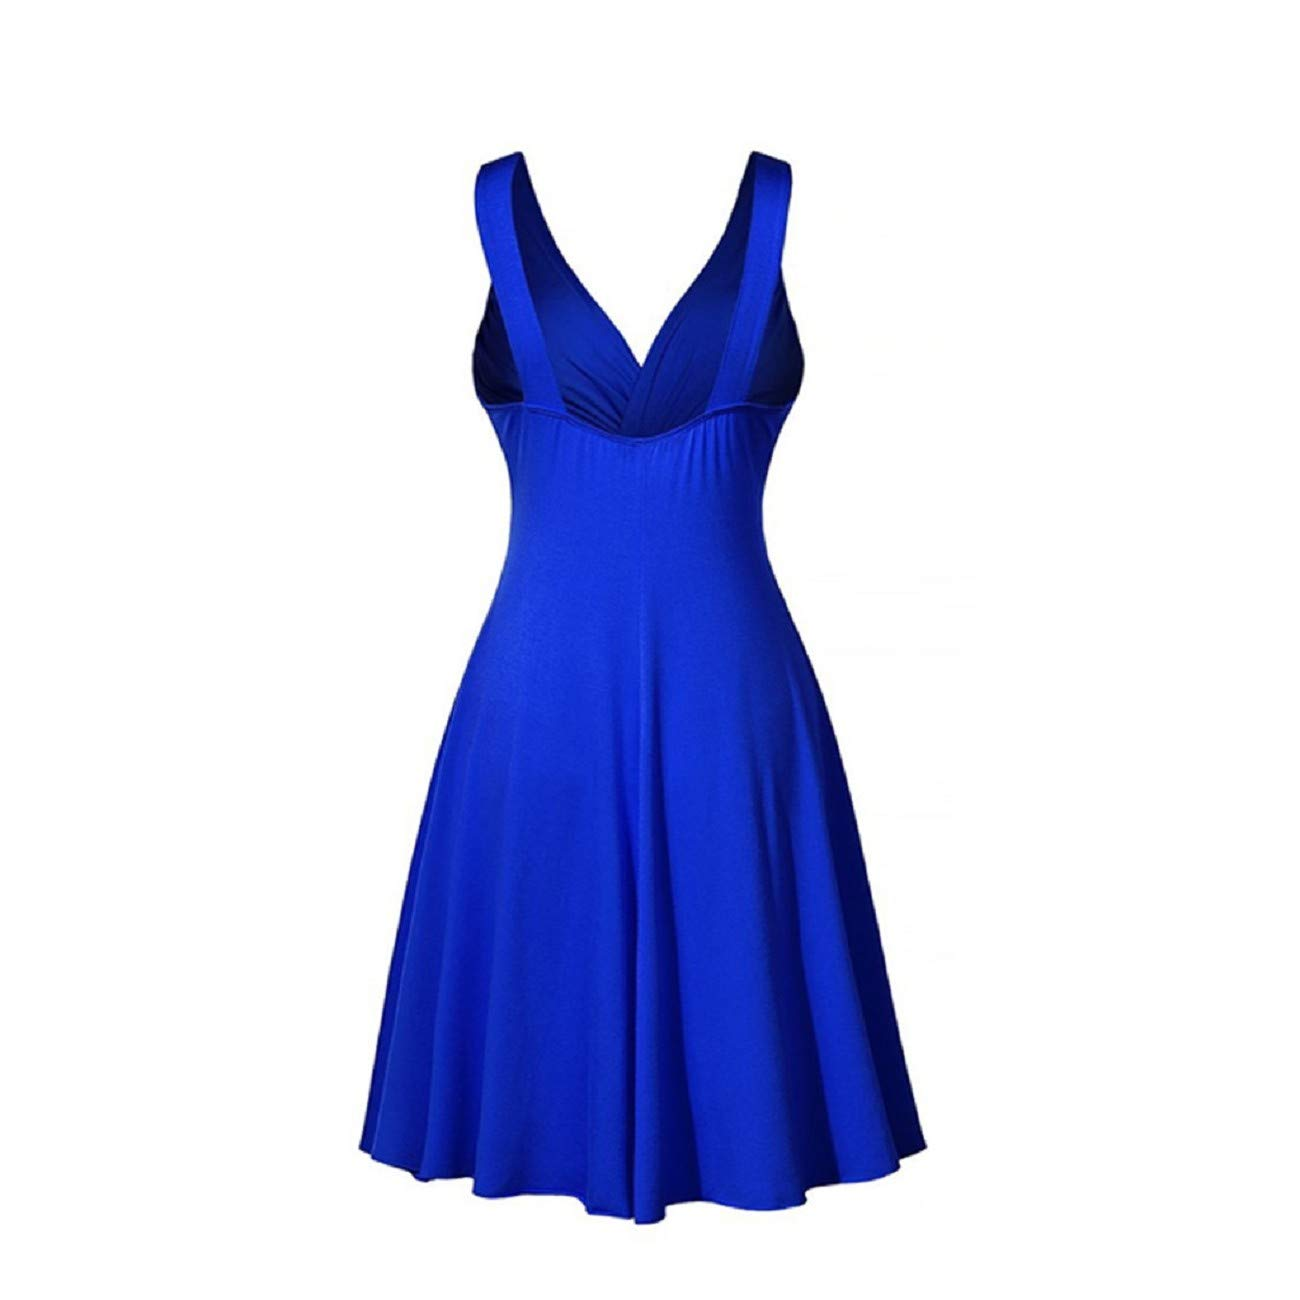 FAPIZI Women Plus Size Dress Vintage V-Neck Sling Leated Slim Flare Skirt Dress Casual Cocktail Skater Mini Short Dress